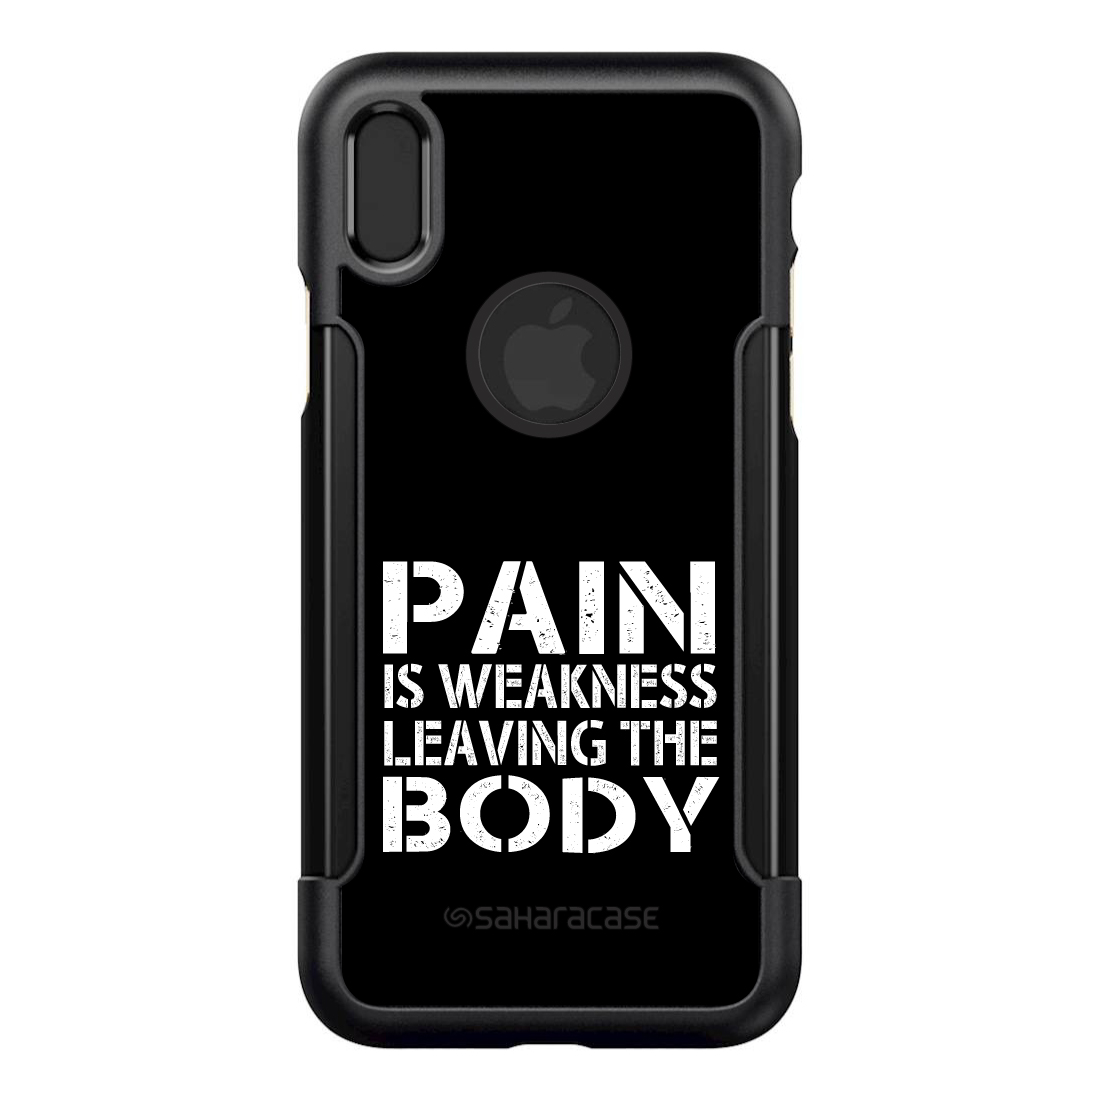 """SaharaCase iPhone X / XS (5.8"""" Screen) Black Shockproof Custom Case By DistinctInk - Protective Kit & ZeroDamage Screen Protector - Pain is Weakness Leaving the Body"""